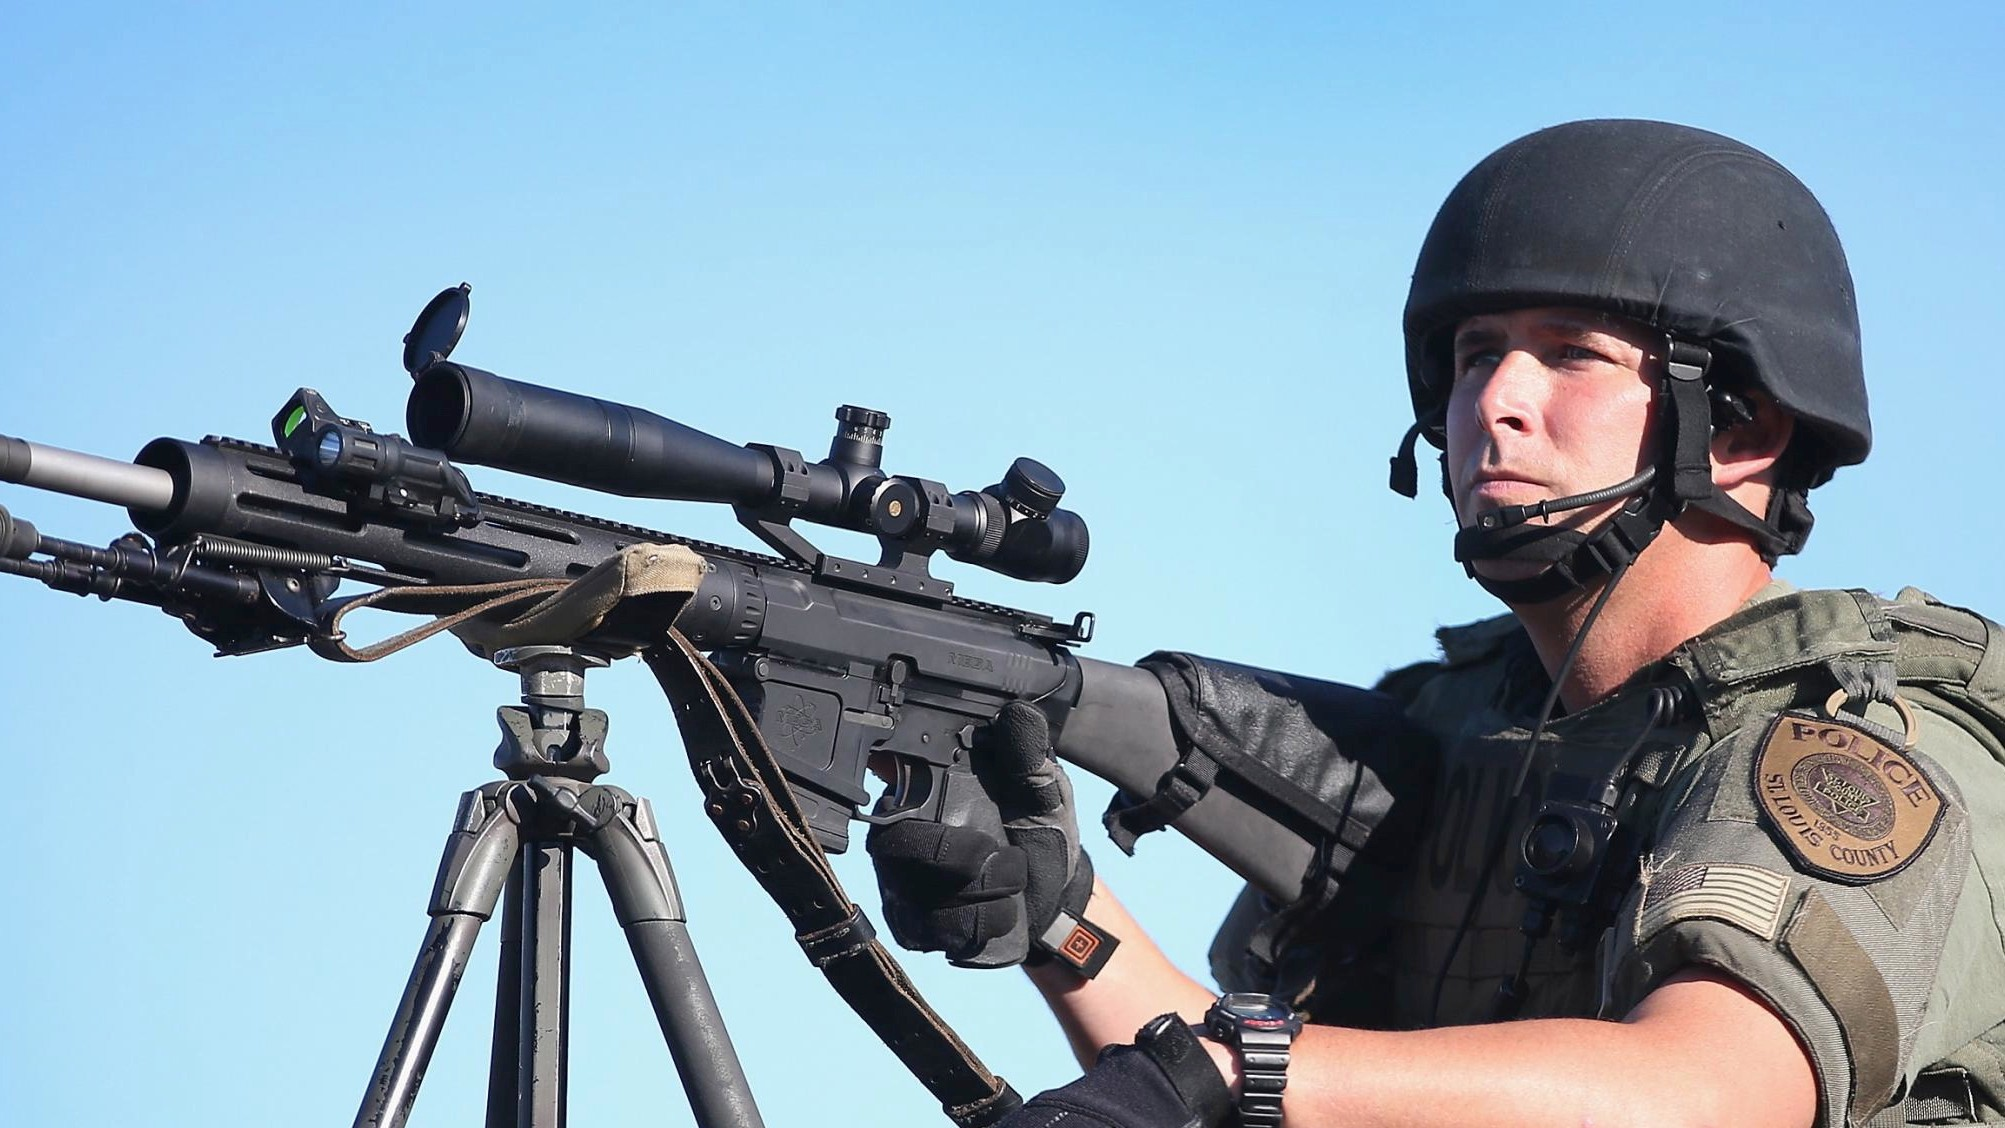 Reddit's Gun Community Takes Aim at 'Novice' Over-Militarized Police in Ferguson